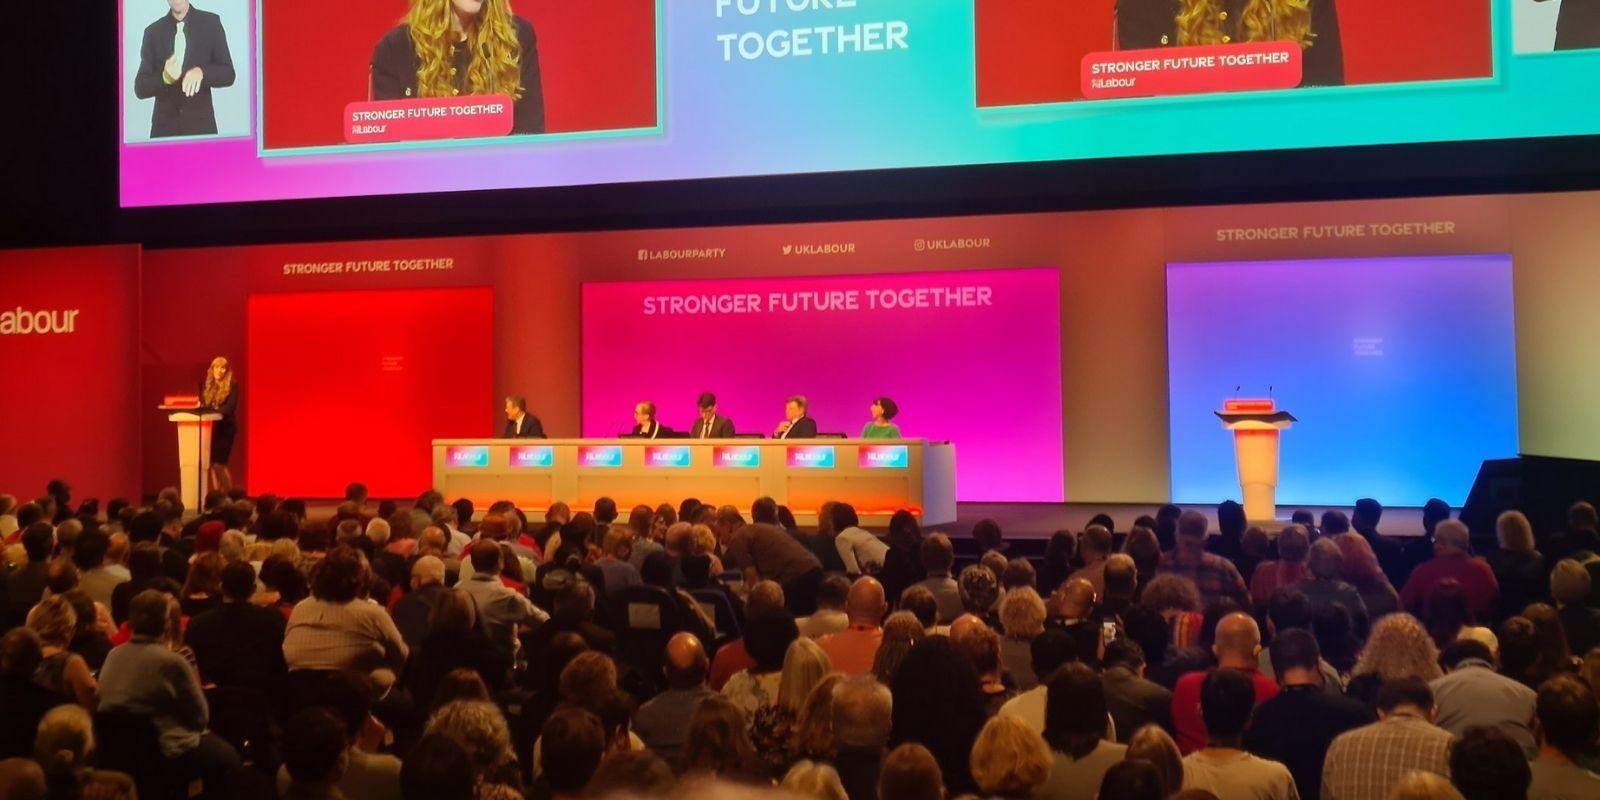 Labour executive complains that 'too many white men' were speaking at conference